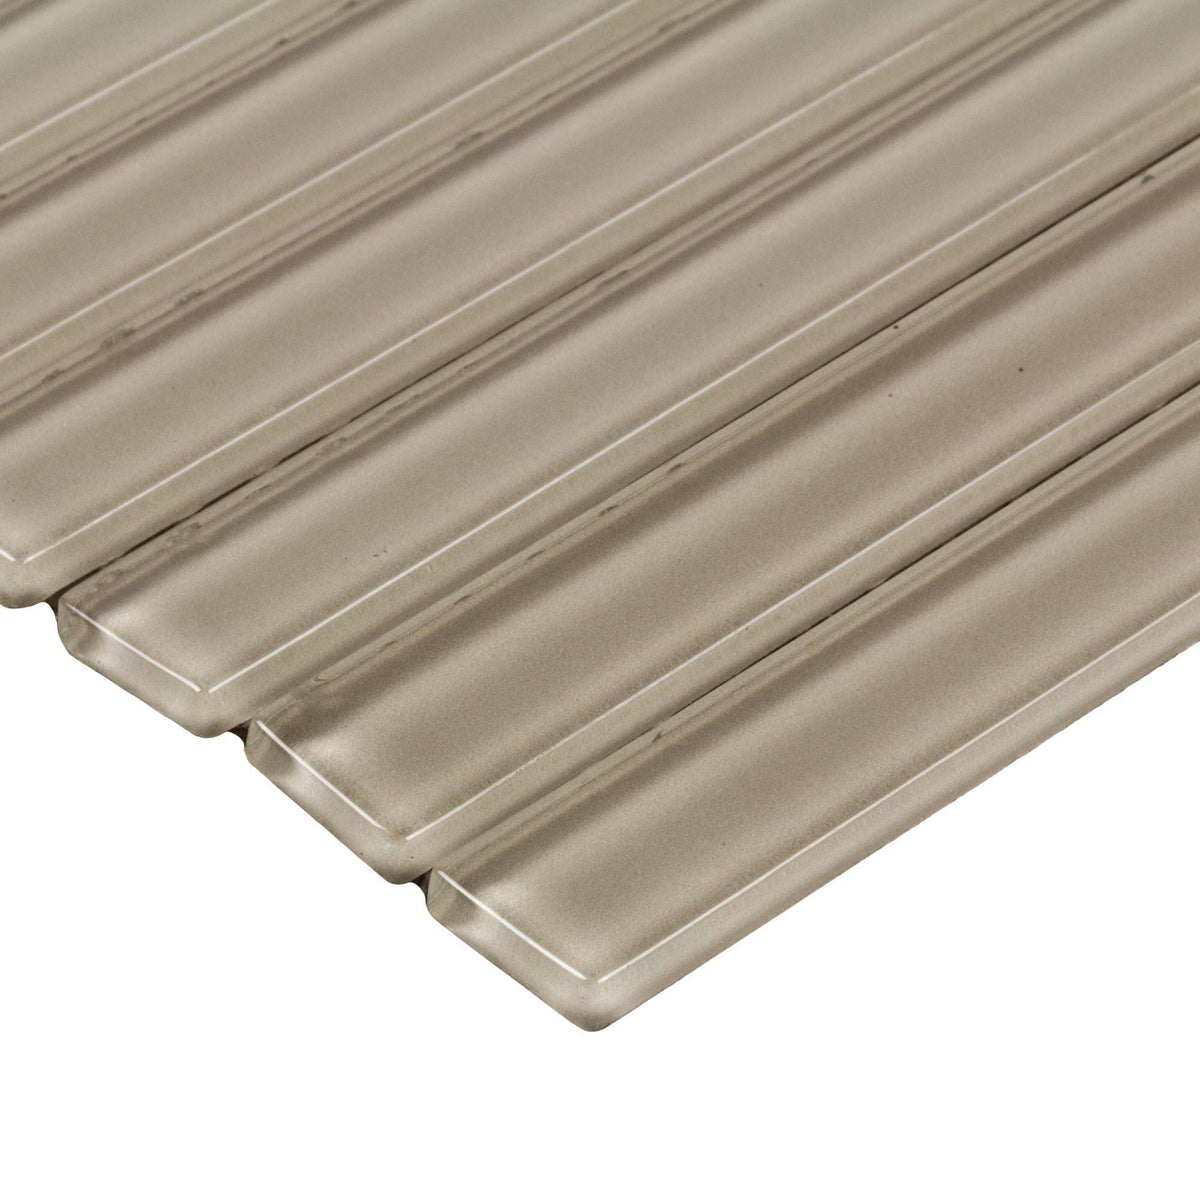 MTO0433 Peel And Stick Pencil Liner Molding Beige Glass